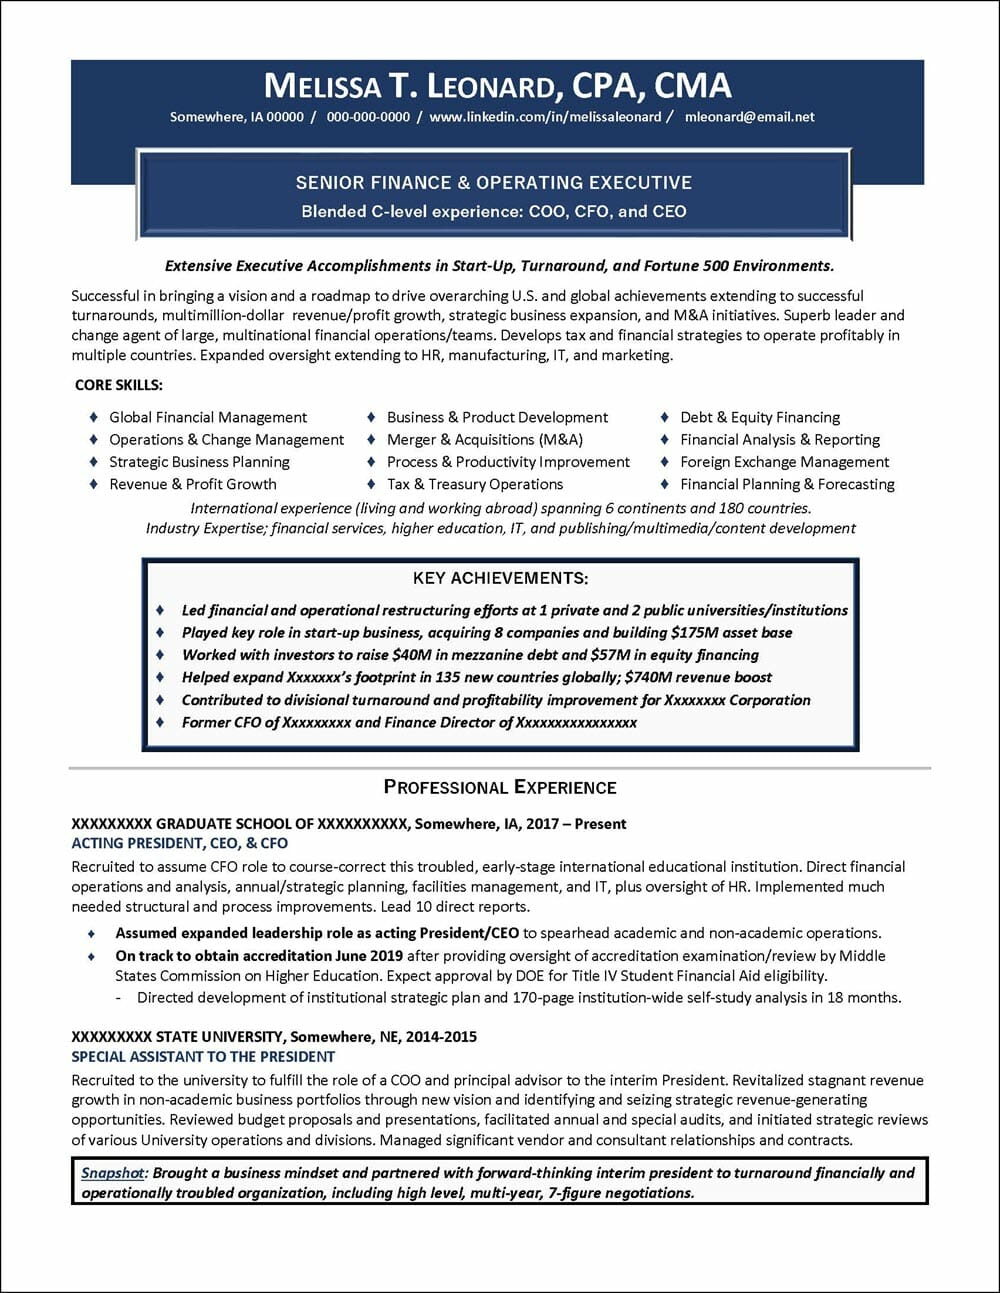 Senior Finance & Operating Executive Resume page 1